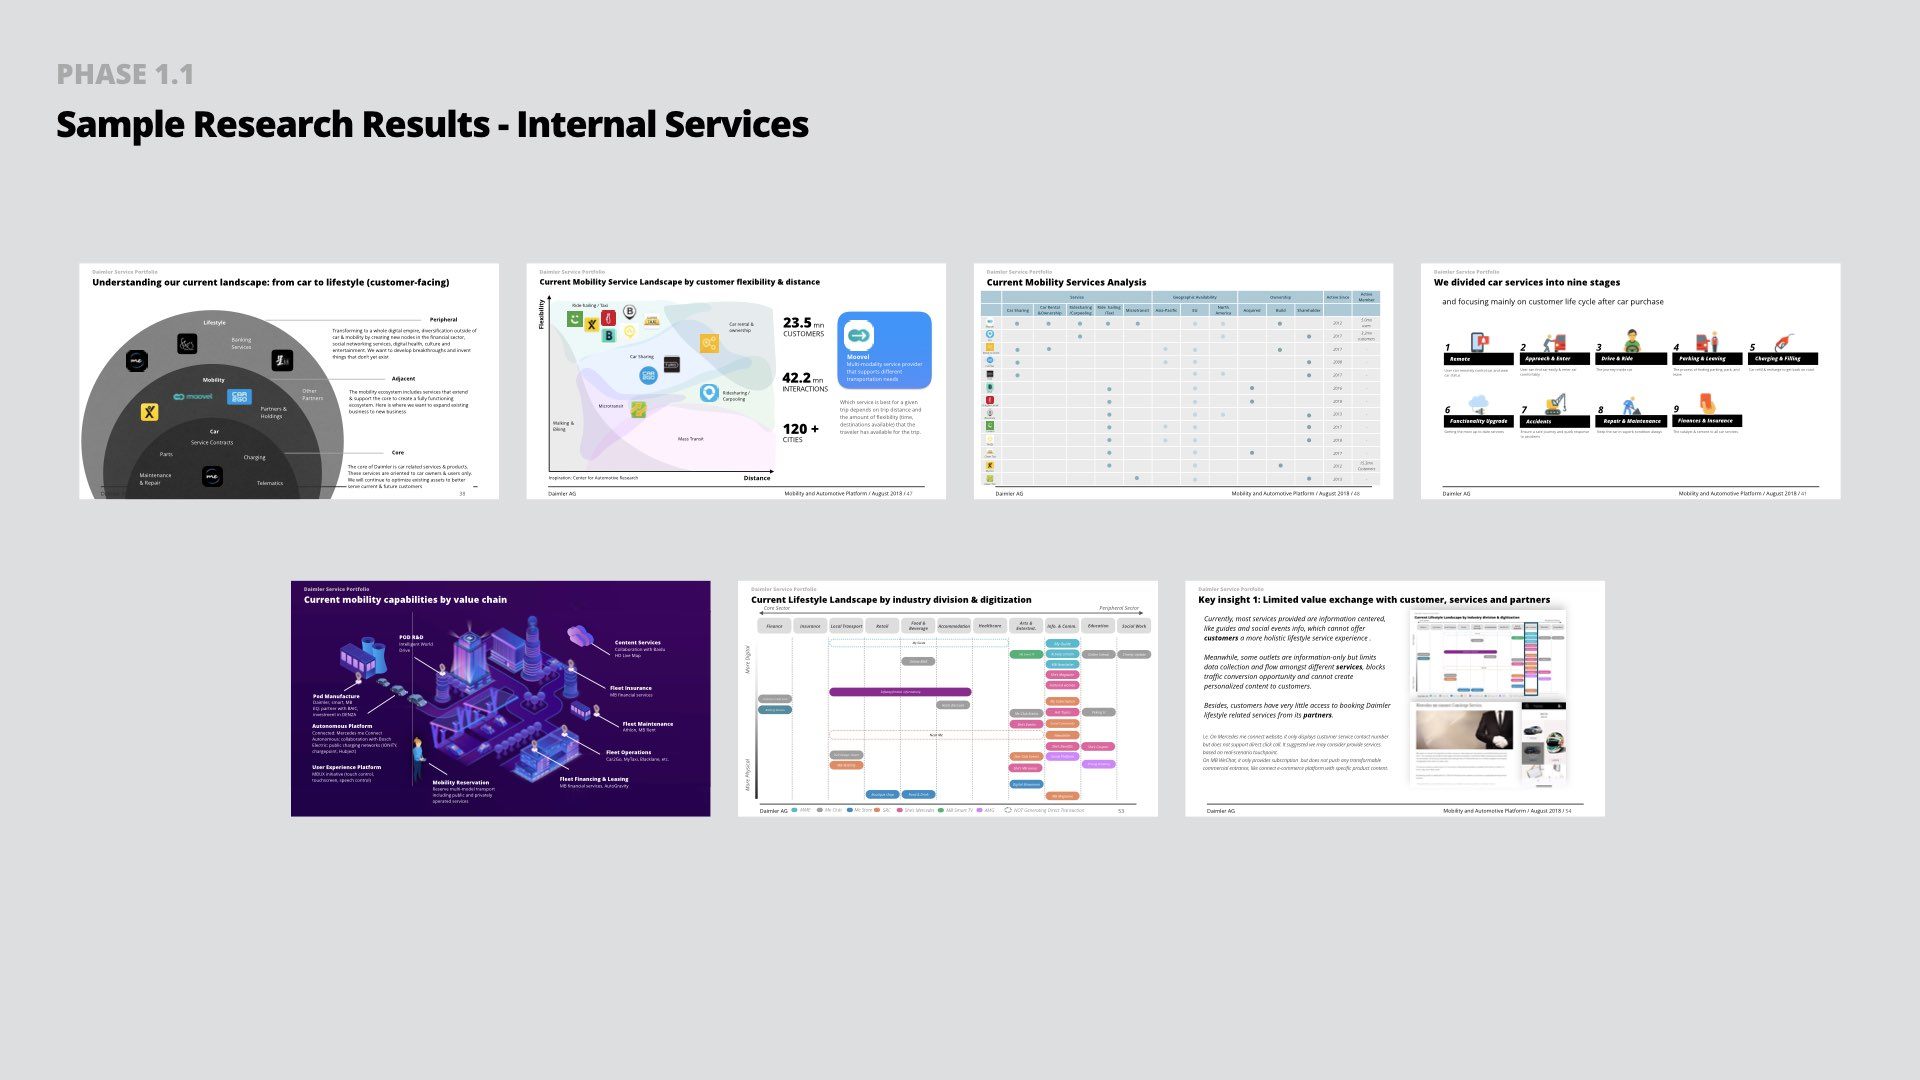 Sample research results: internal services